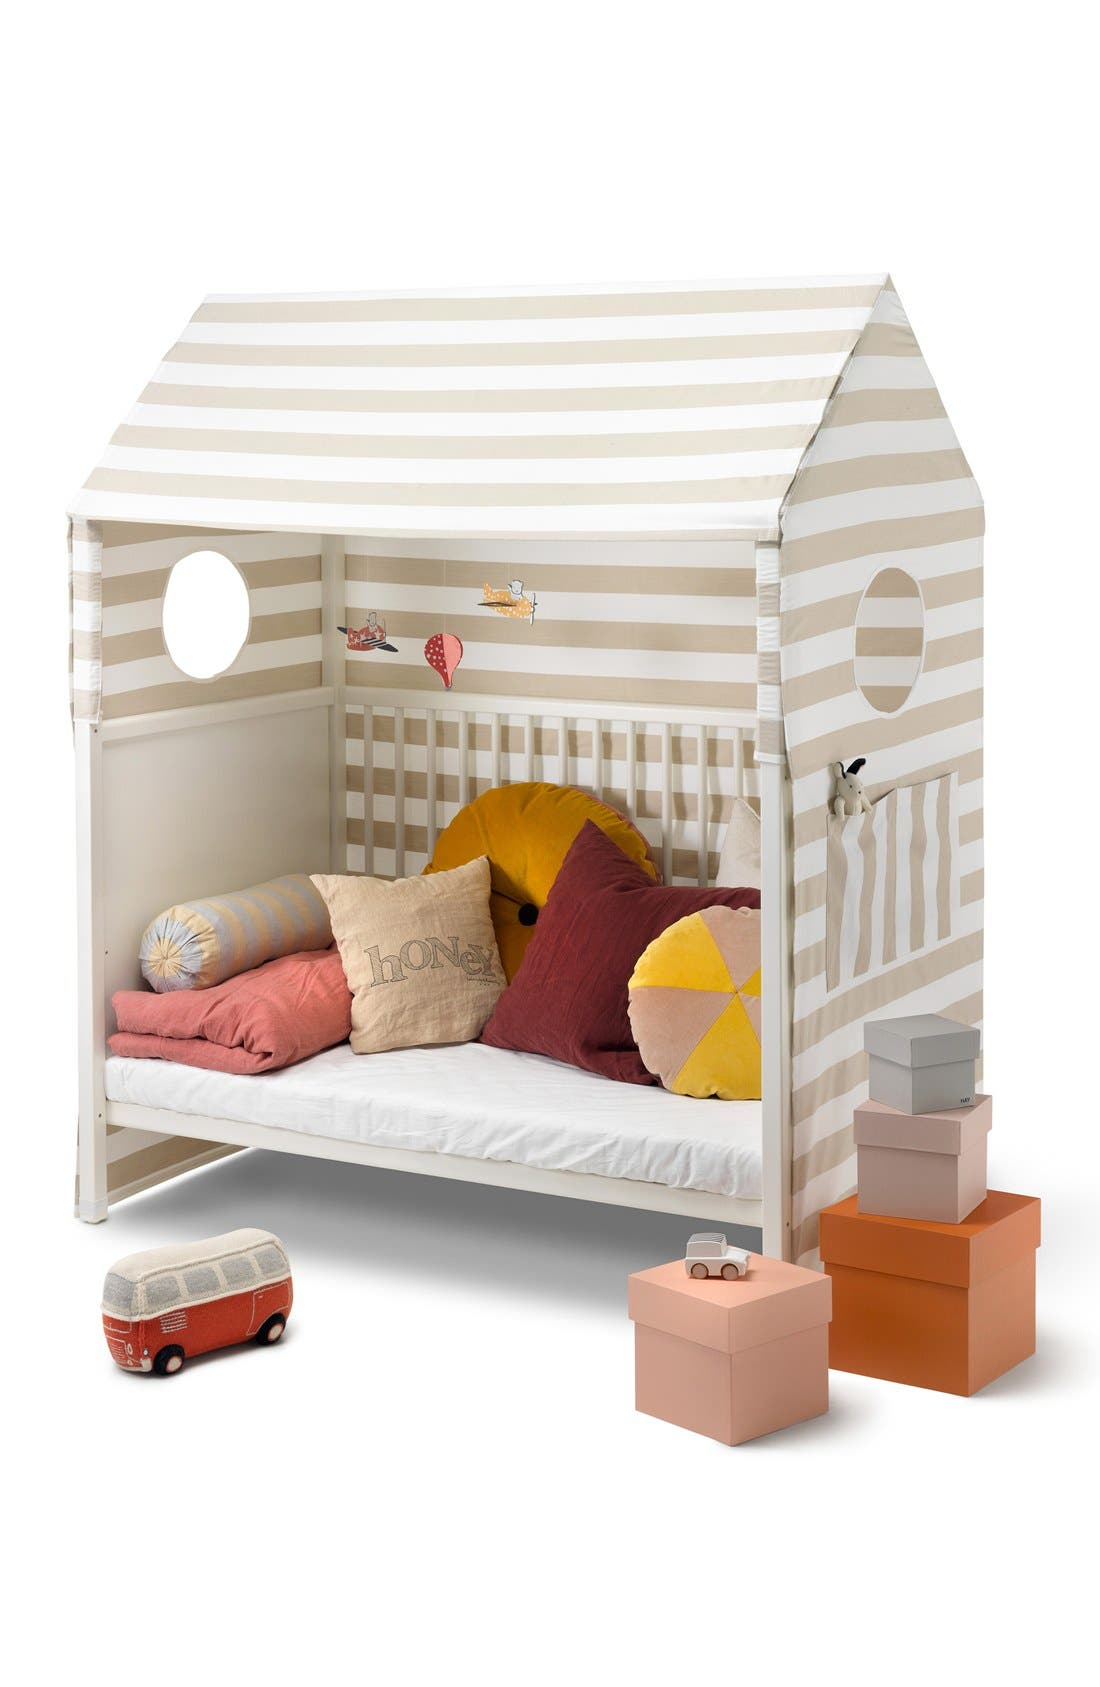 STOKKE,                             'Home<sup>™</sup>' Toddler Bed Tent,                             Alternate thumbnail 6, color,                             270